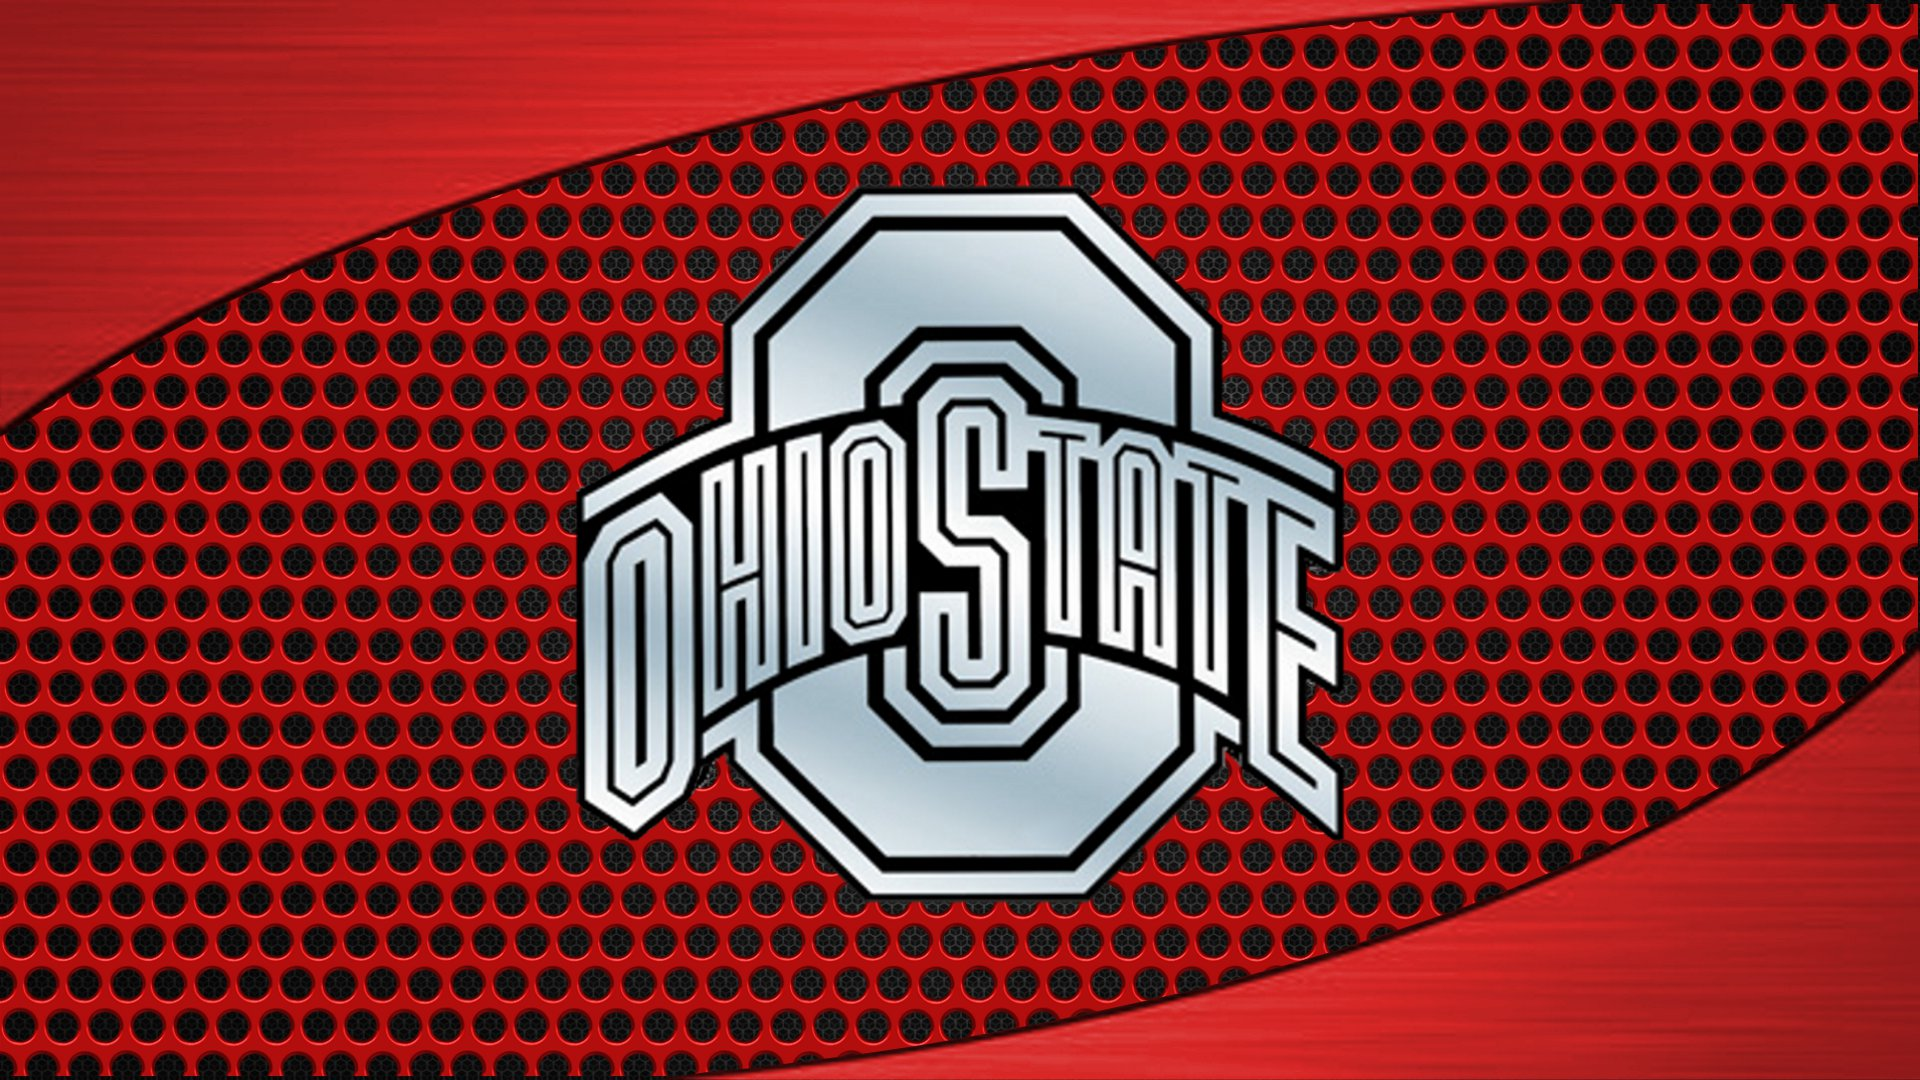 OSU Wallpaper 333   Ohio State Football Wallpaper 29289012 1920x1080